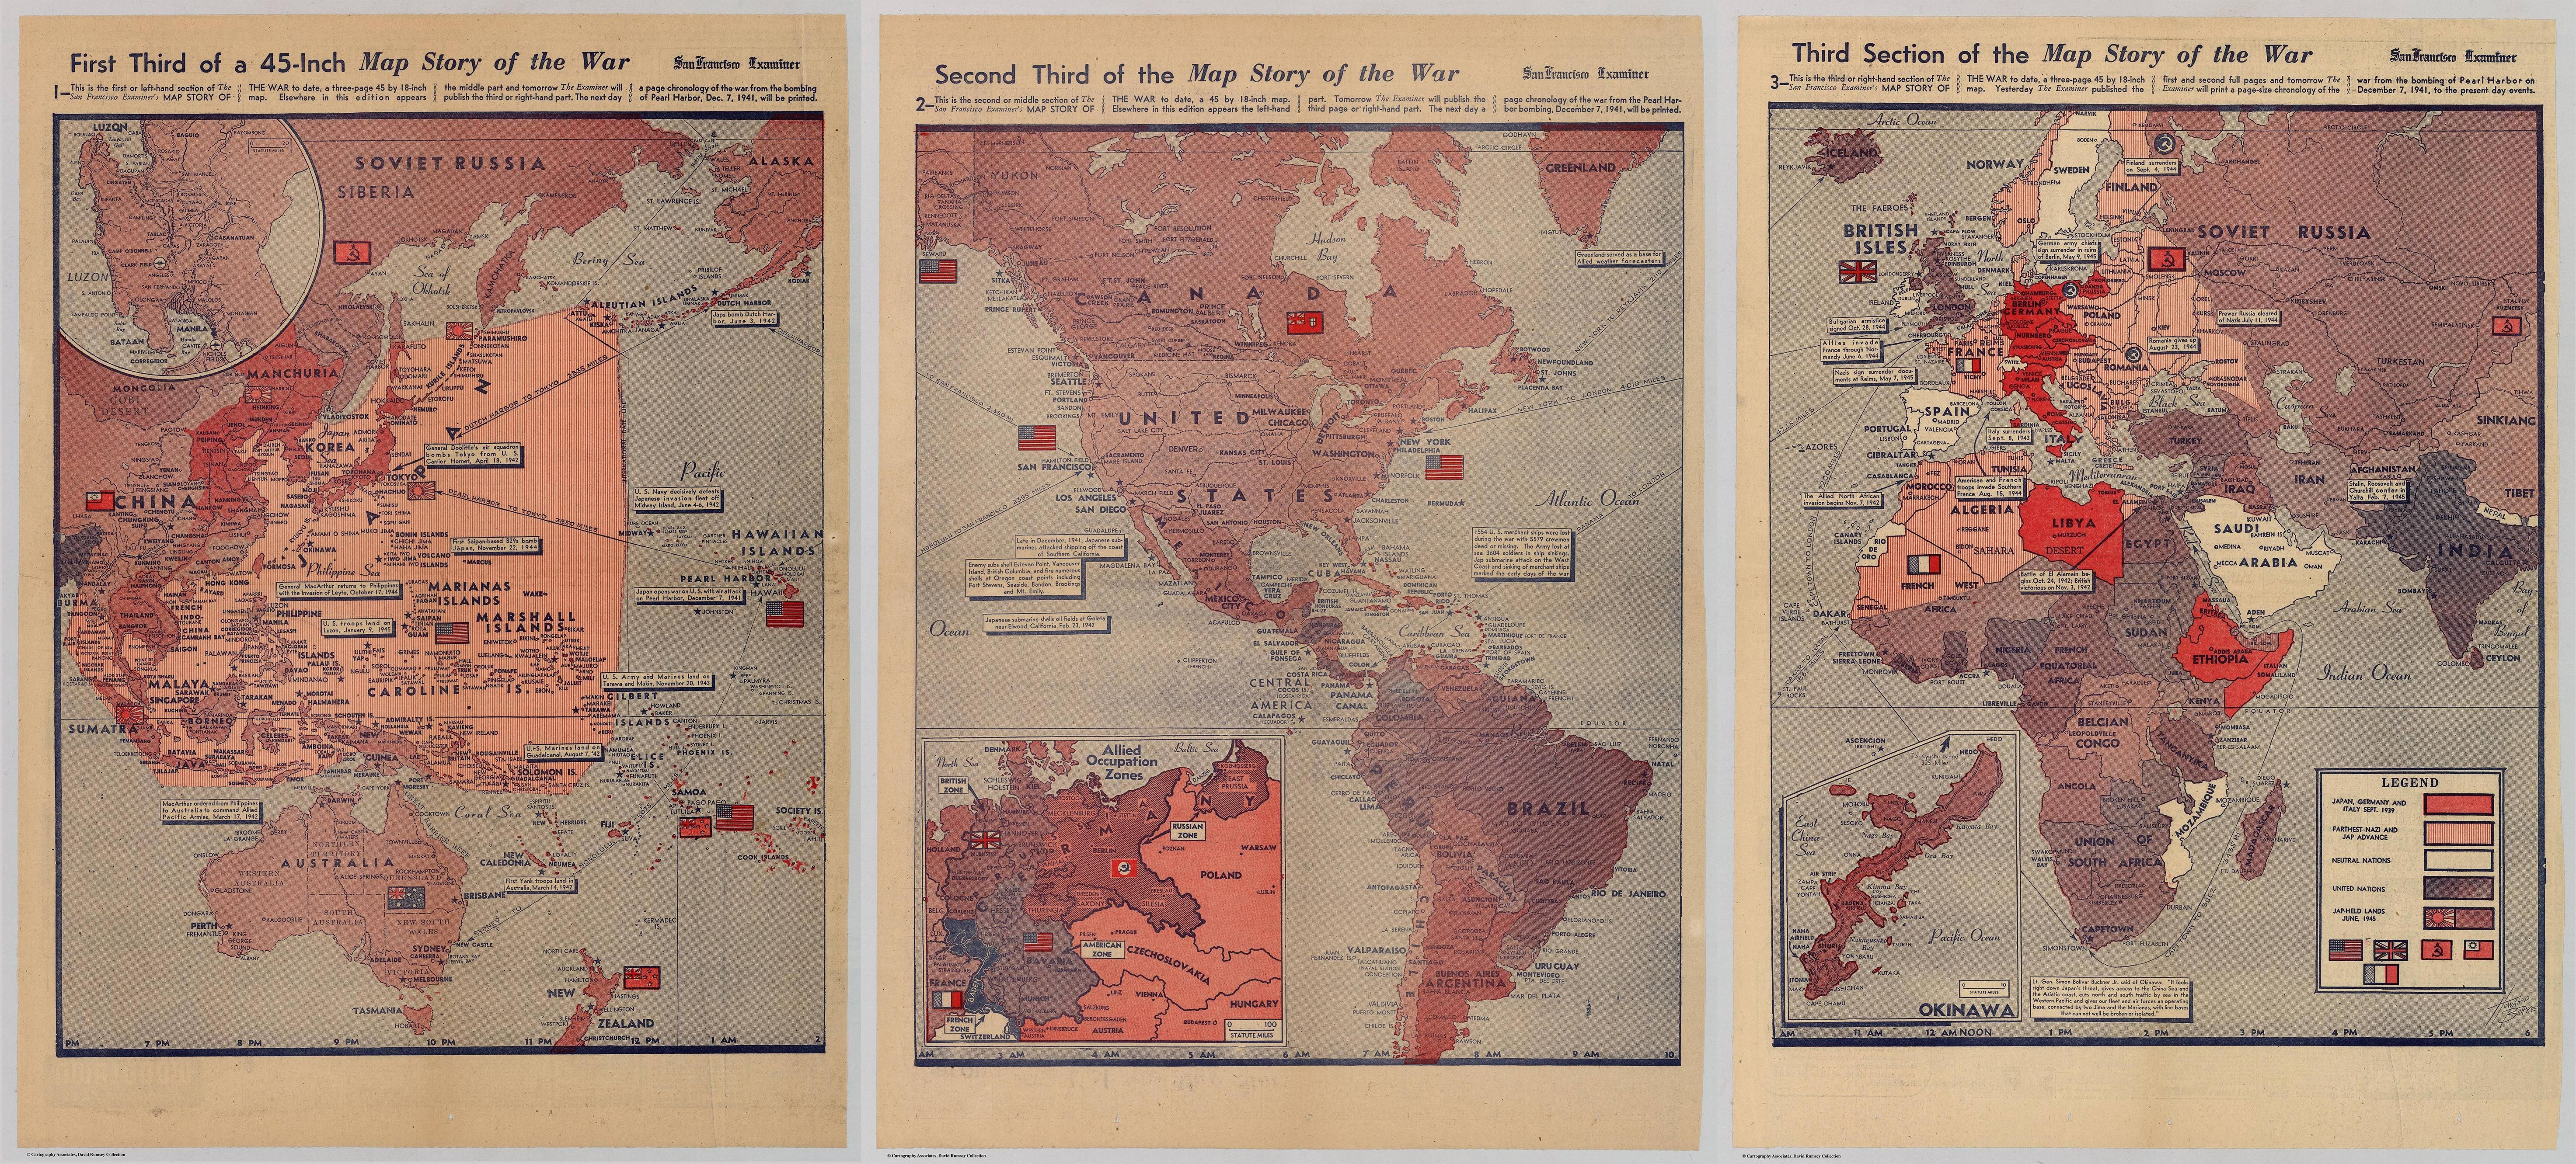 History of world war ii a 3 sheet map published in the san history of world war ii a 3 sheet map published in the san francisco gumiabroncs Choice Image